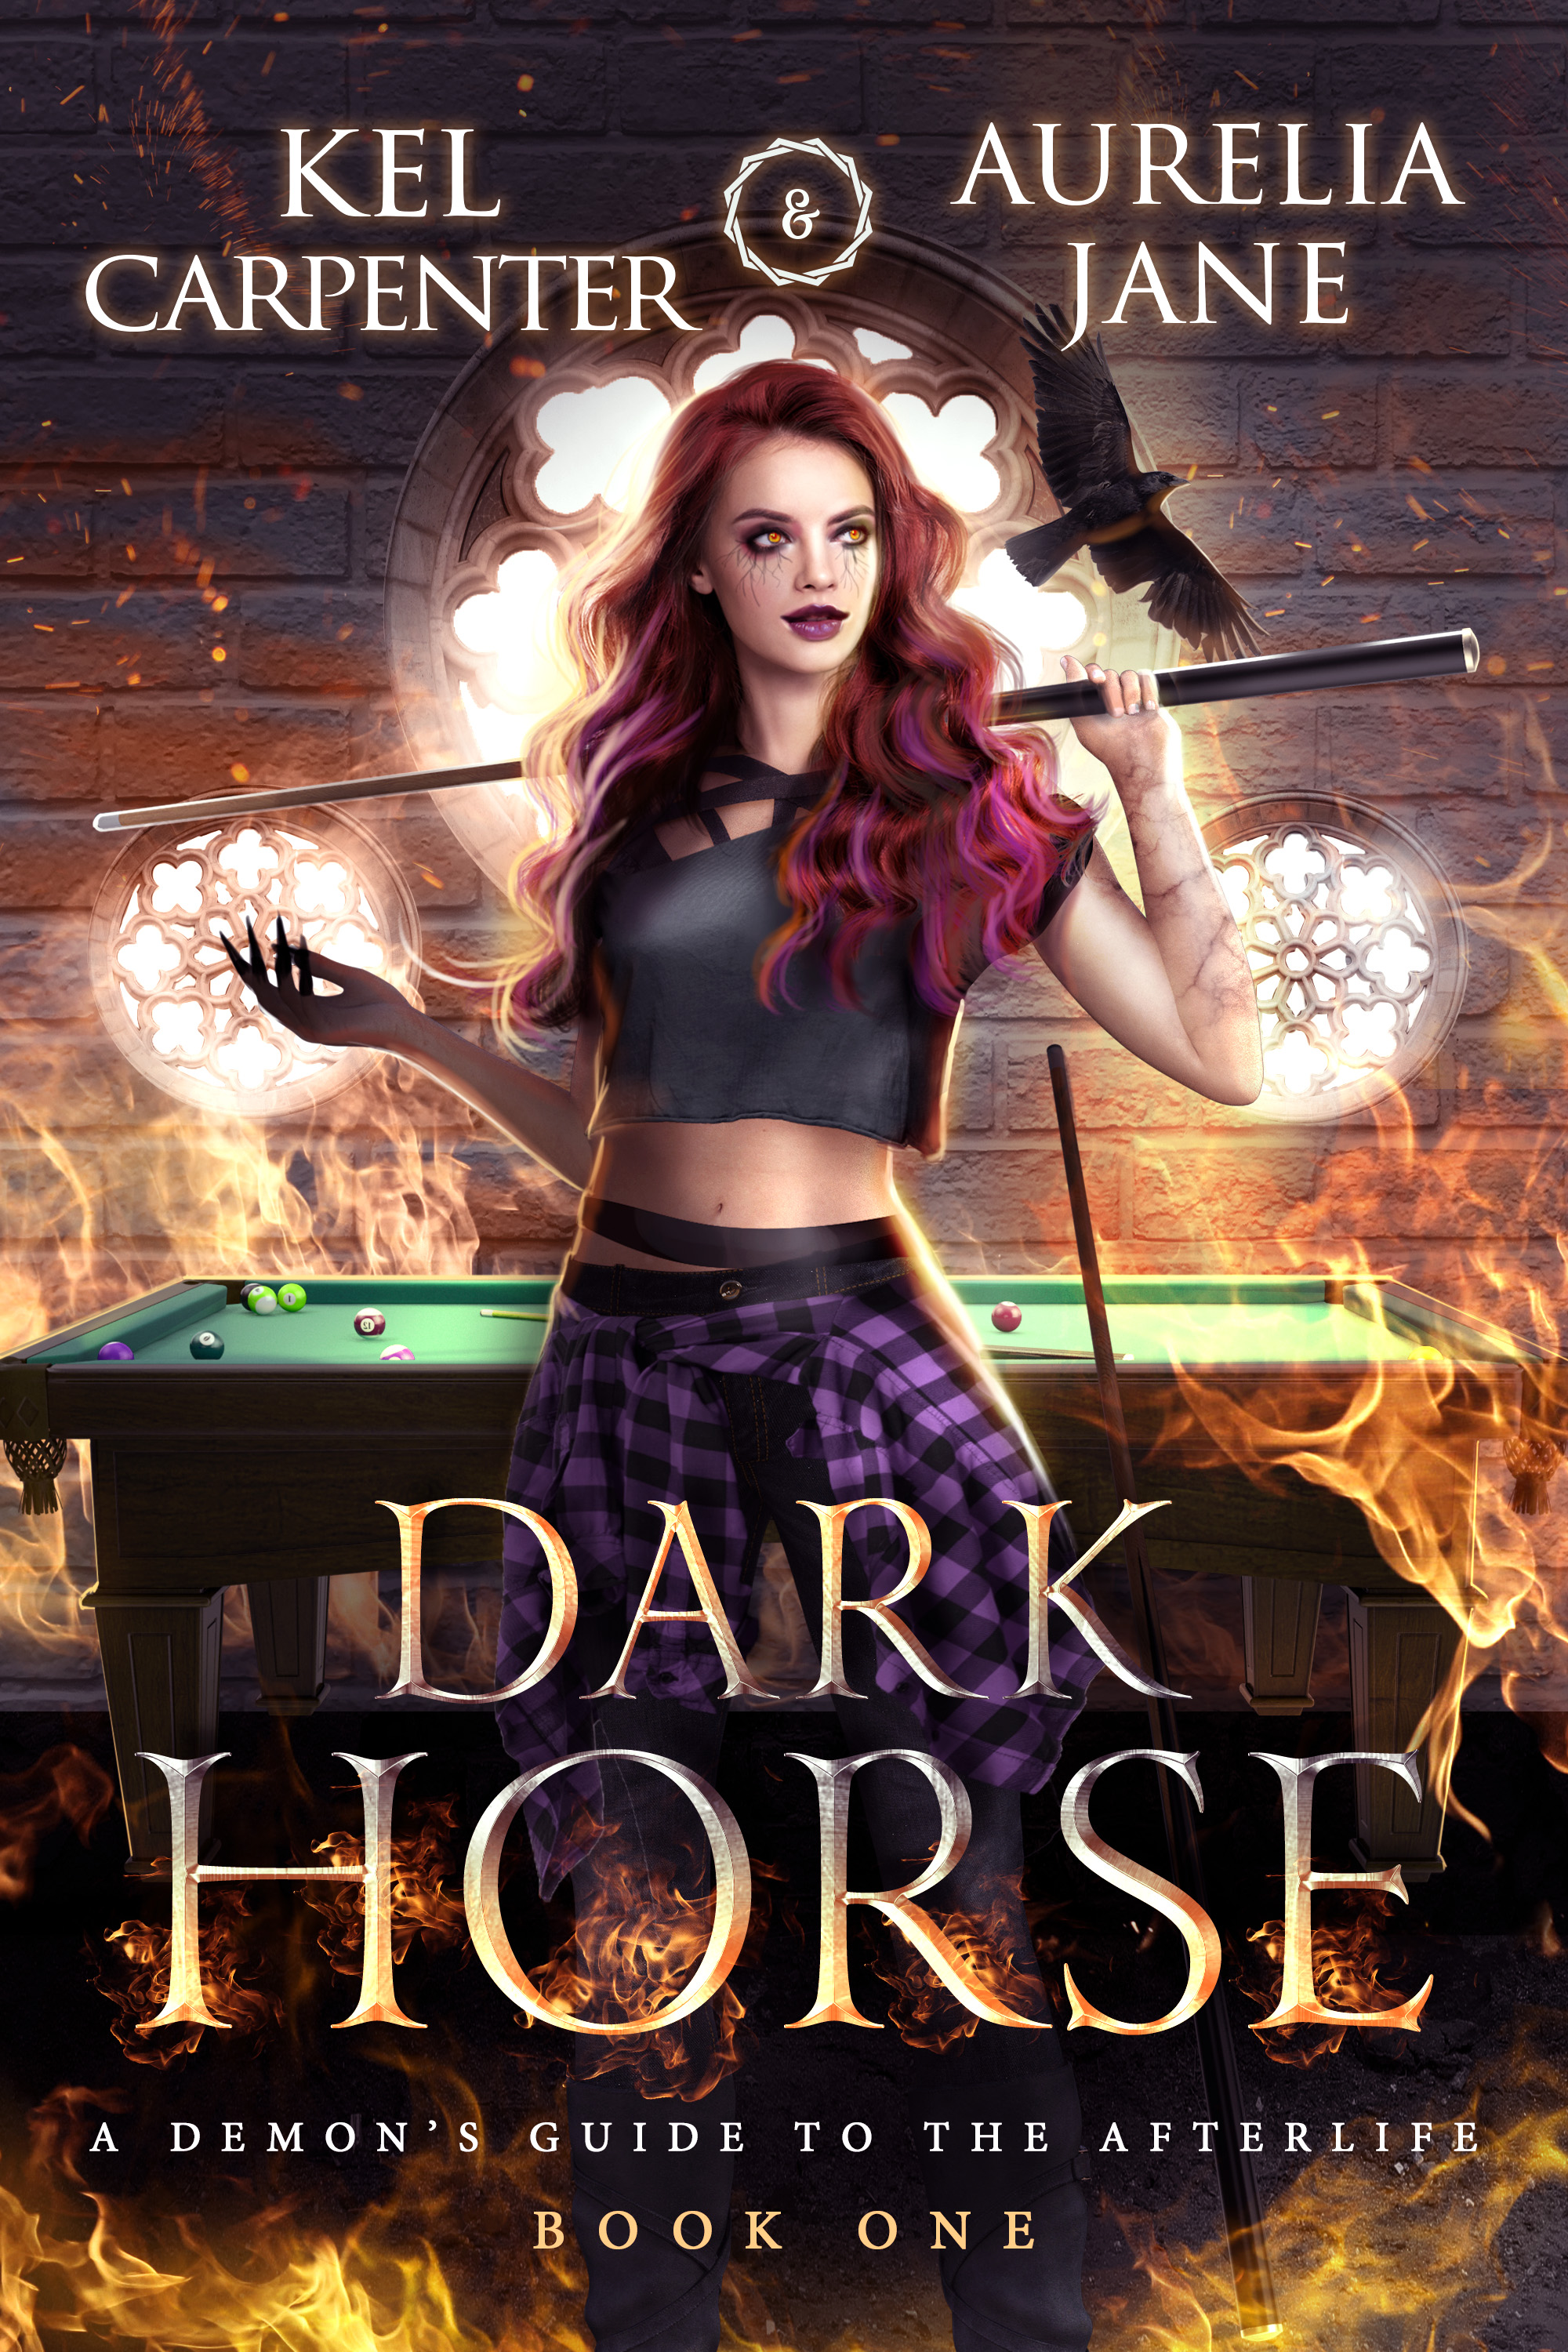 Dark Horse (A Demon's Guide to the Afterlife, #1)